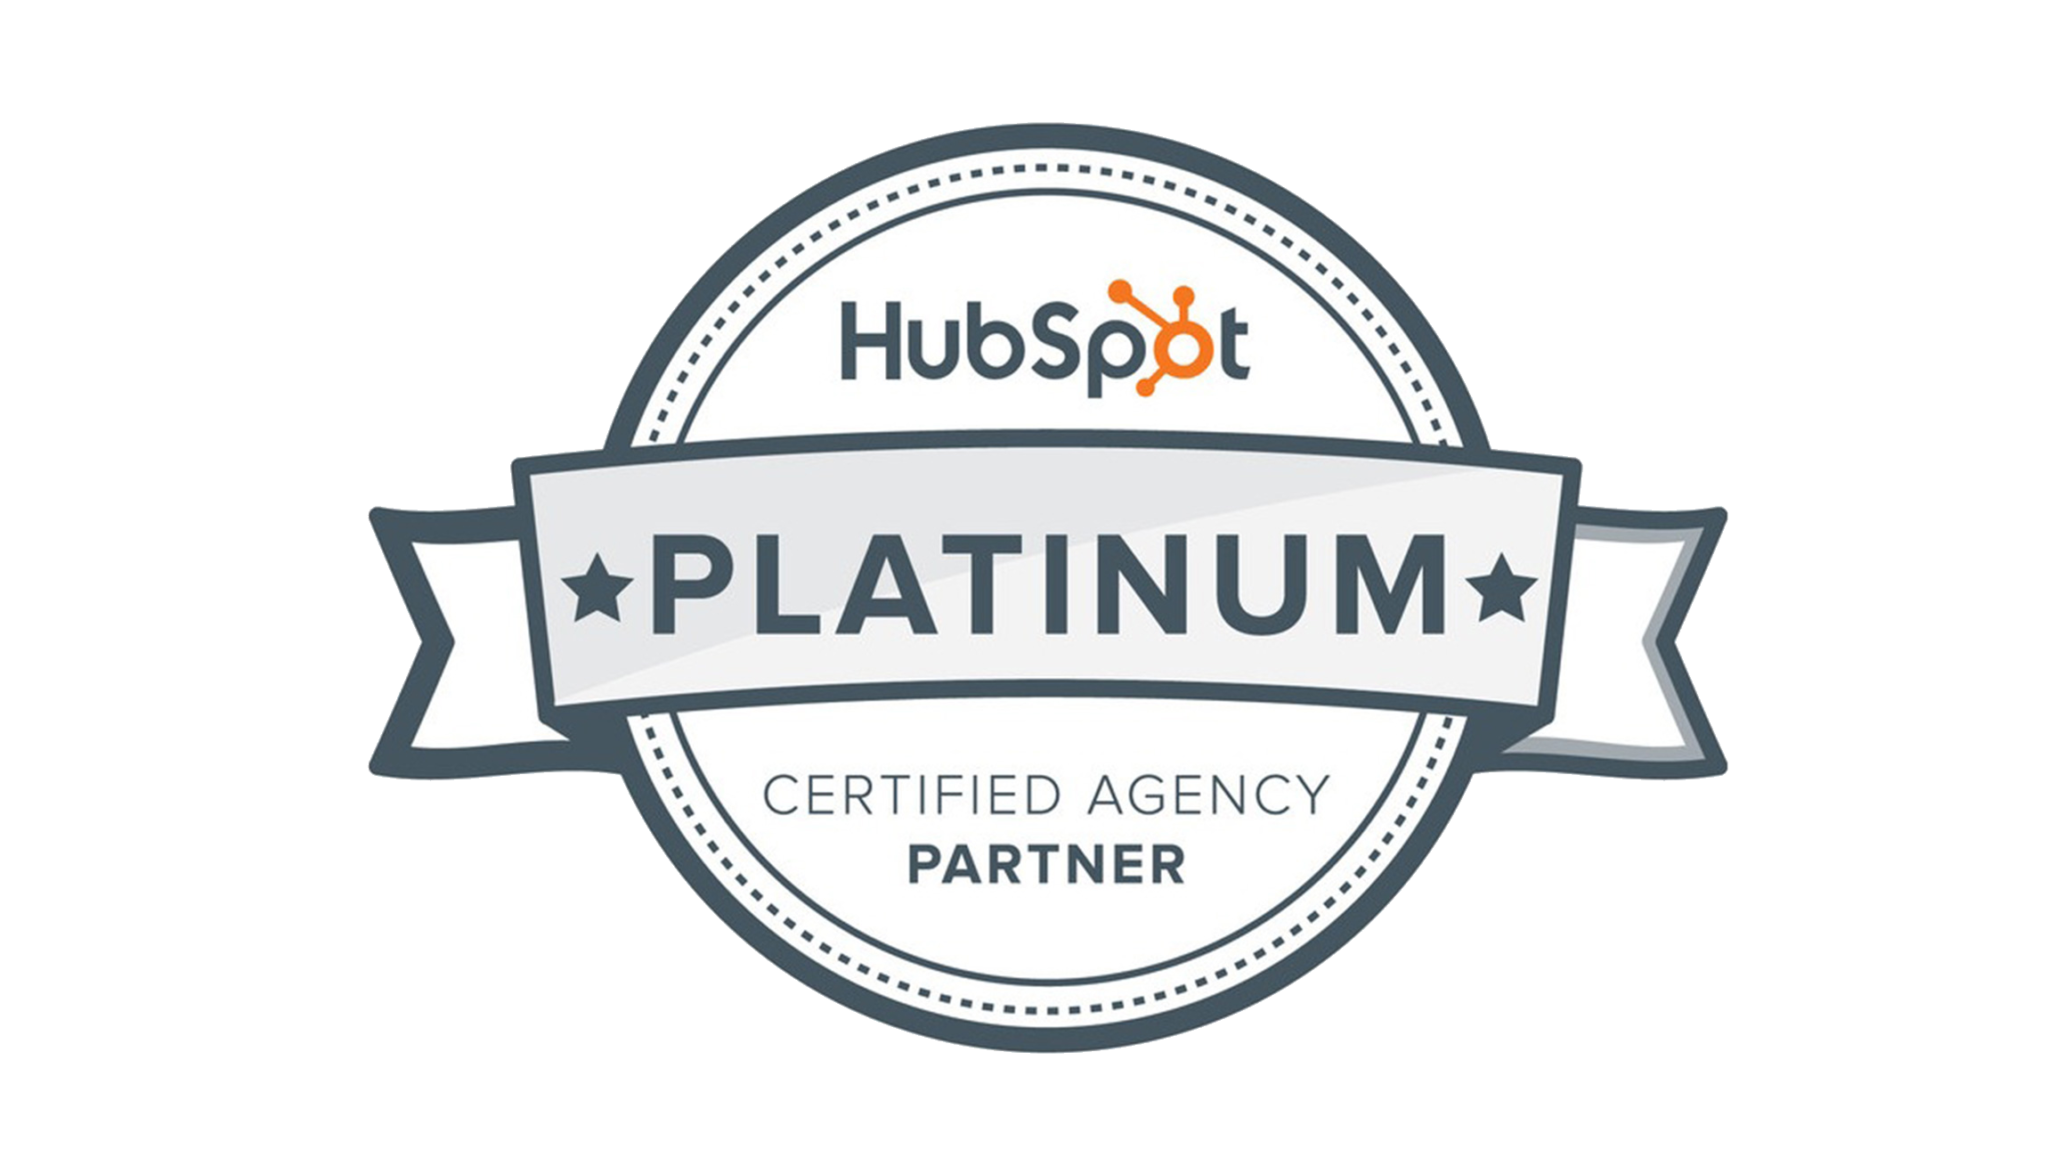 We're a HubSpot Platinum Partner Agency